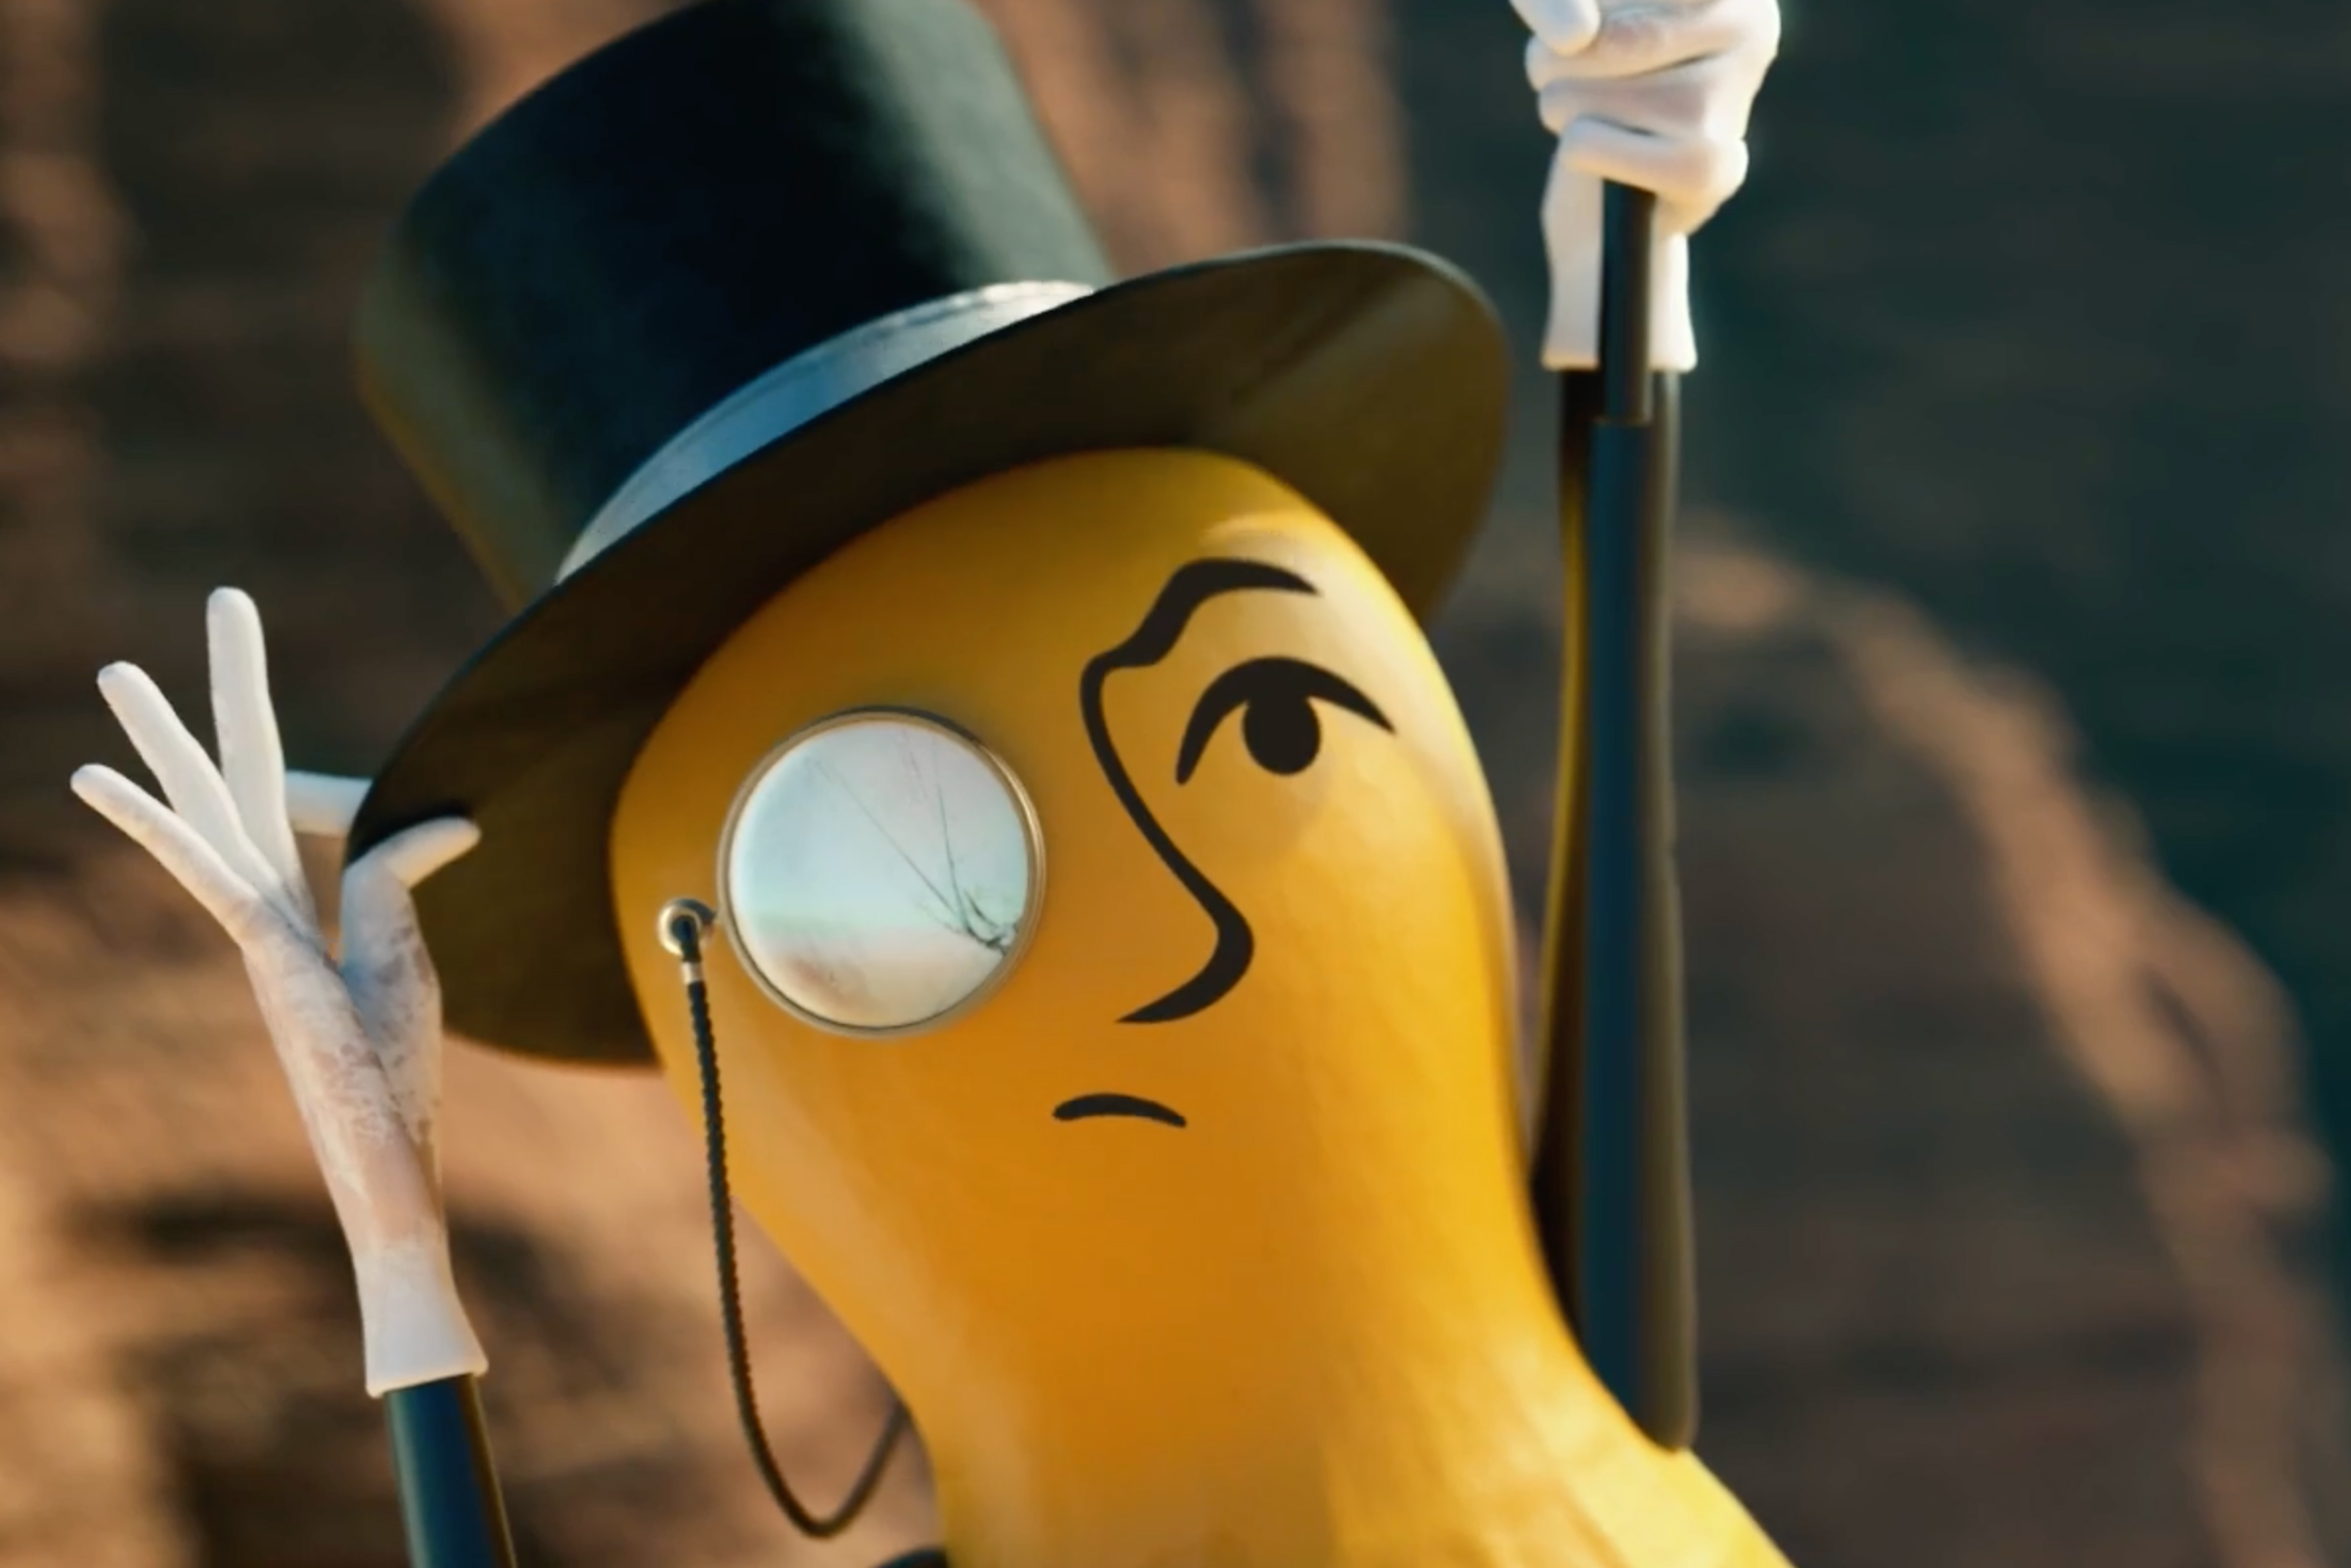 Planters cuts its Super Bowl pregame ad and will air Mr. Peanut's funeral earlier in the game